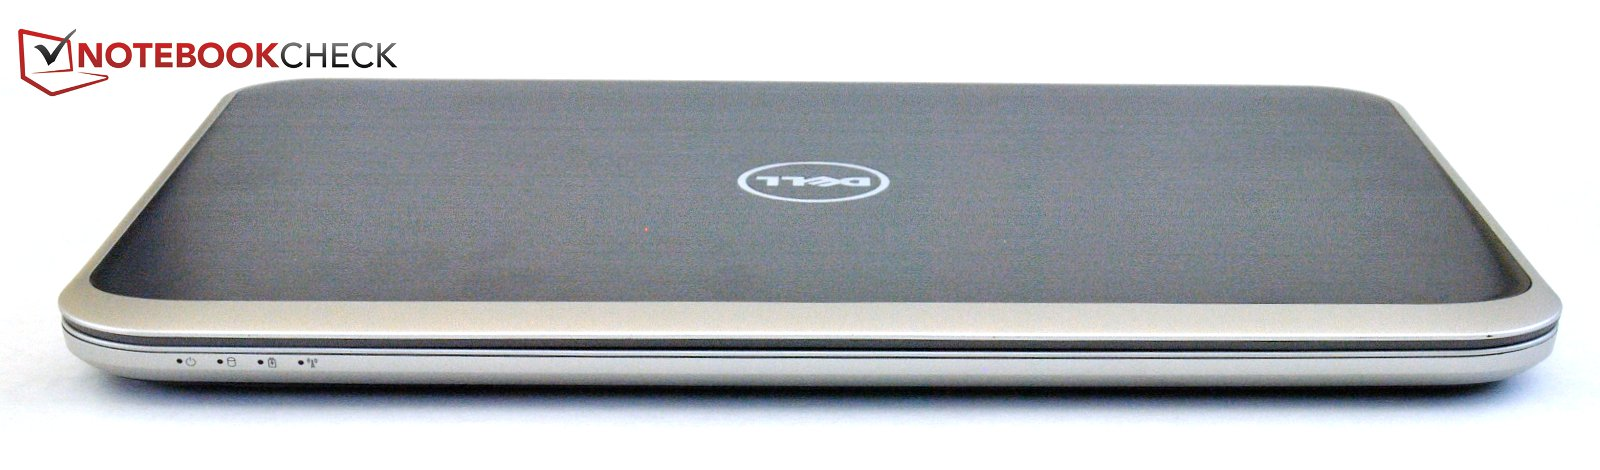 Dell Inspiron 14Z 5423 Notebook 5560 HSPA+ Mini Card Drivers for Windows XP